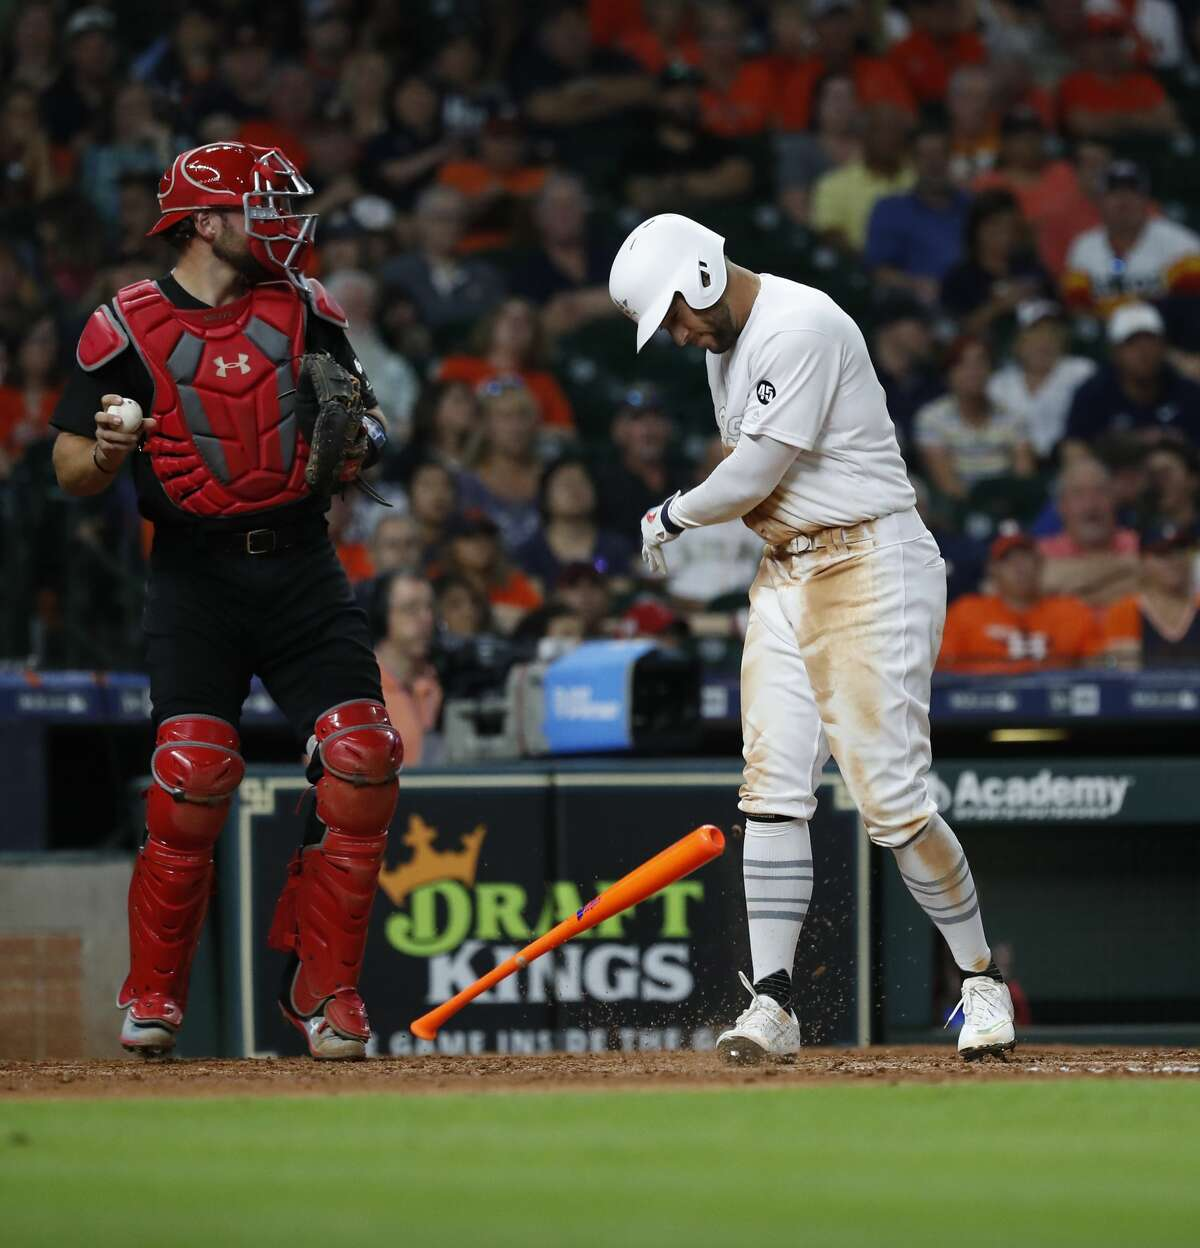 Houston Astros George Springer (4) slams his bat down after striking out to end the ninth inning of an MLB game at Minute Maid Park, Saturday, August 24, 2019.